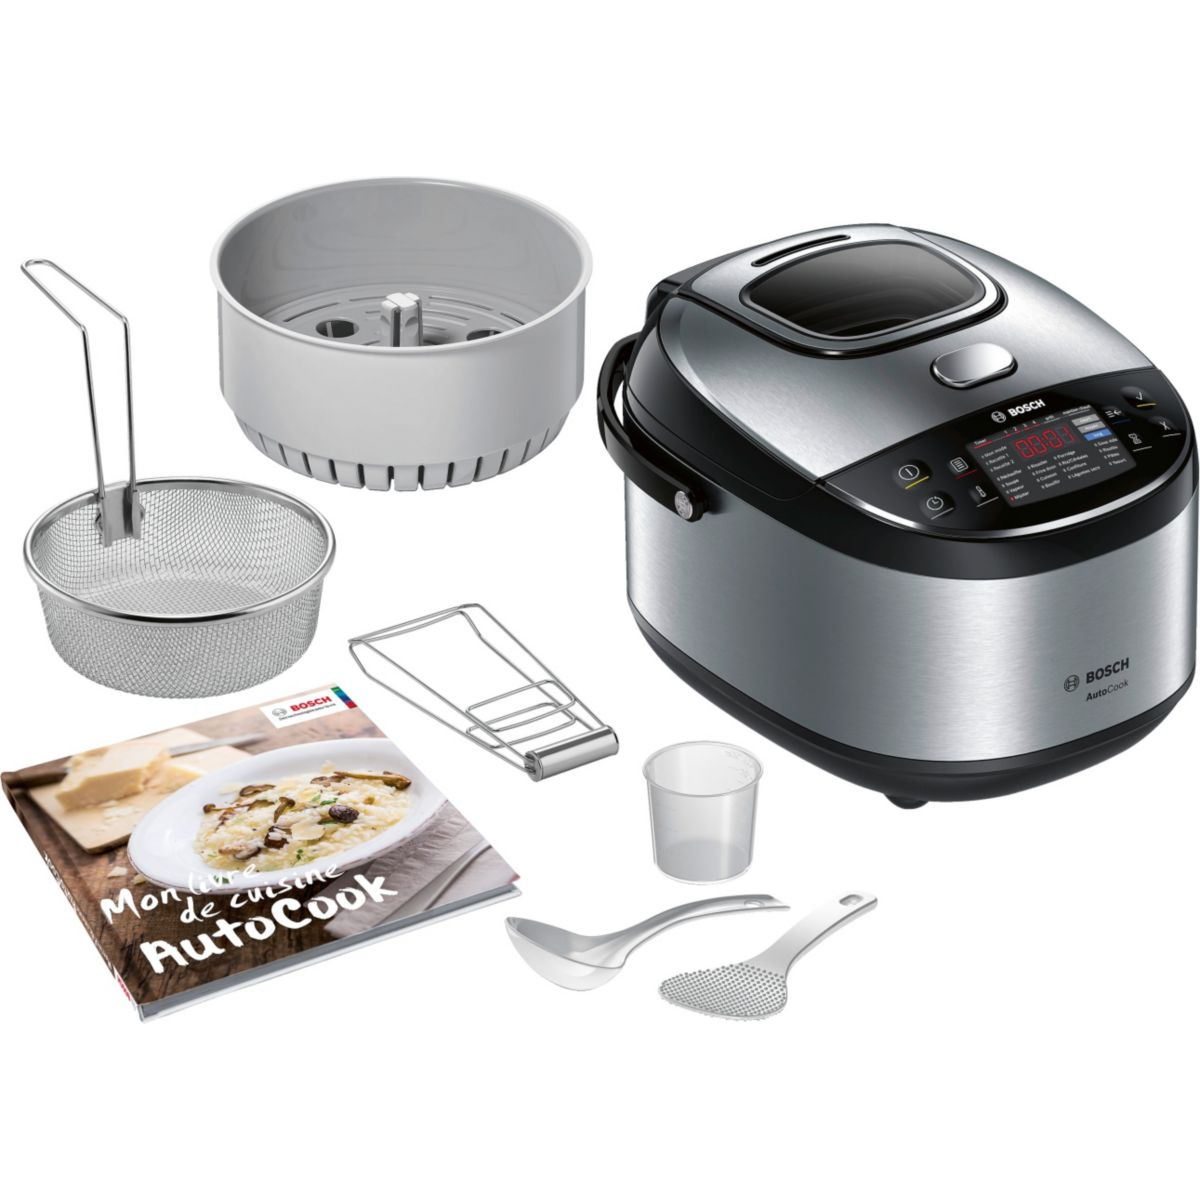 bosch muc28b64 multicuiseur intelligent autocook comparer avec. Black Bedroom Furniture Sets. Home Design Ideas